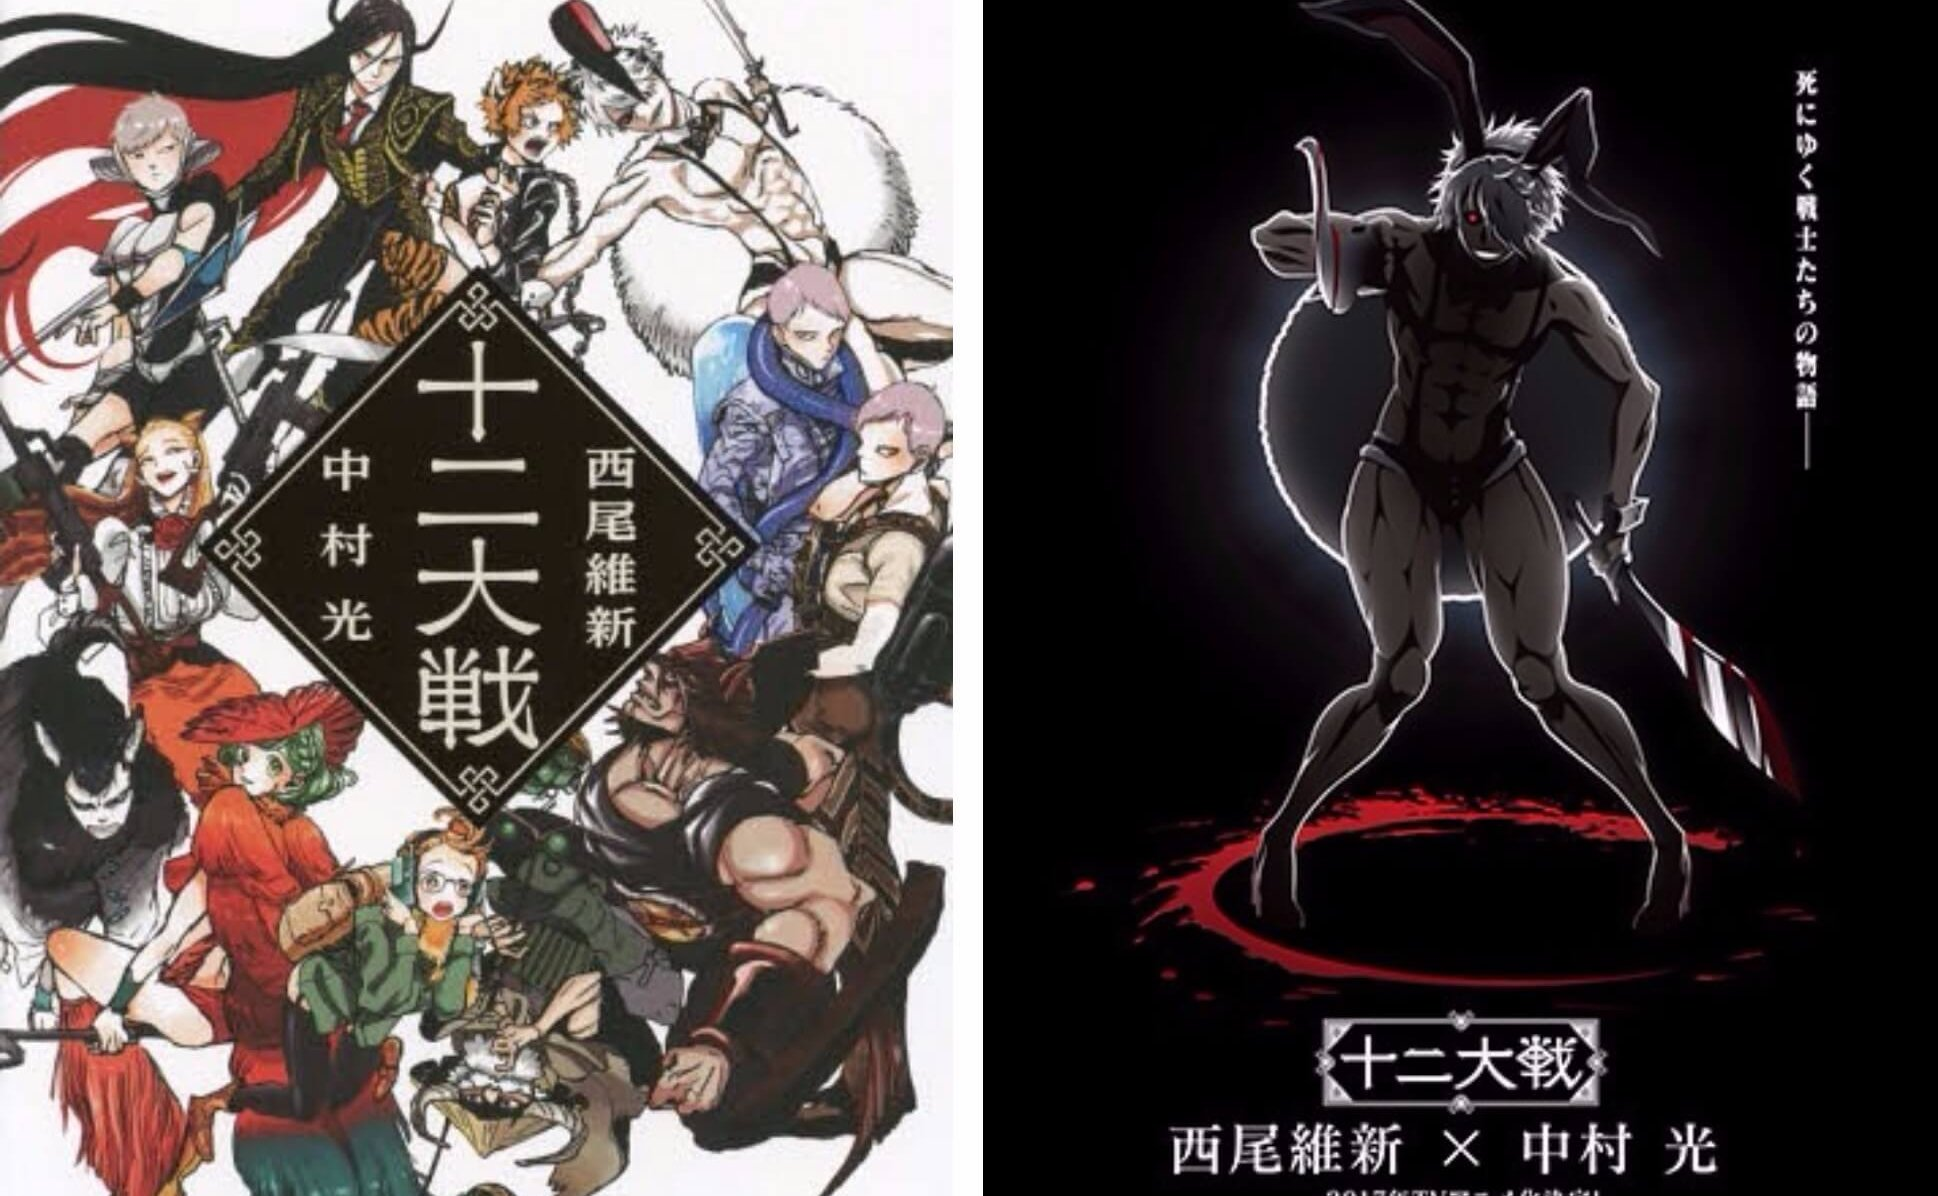 Anime 'Juuni Taisen' Rilis Video Teaser dan Infokan Jumlah Episode